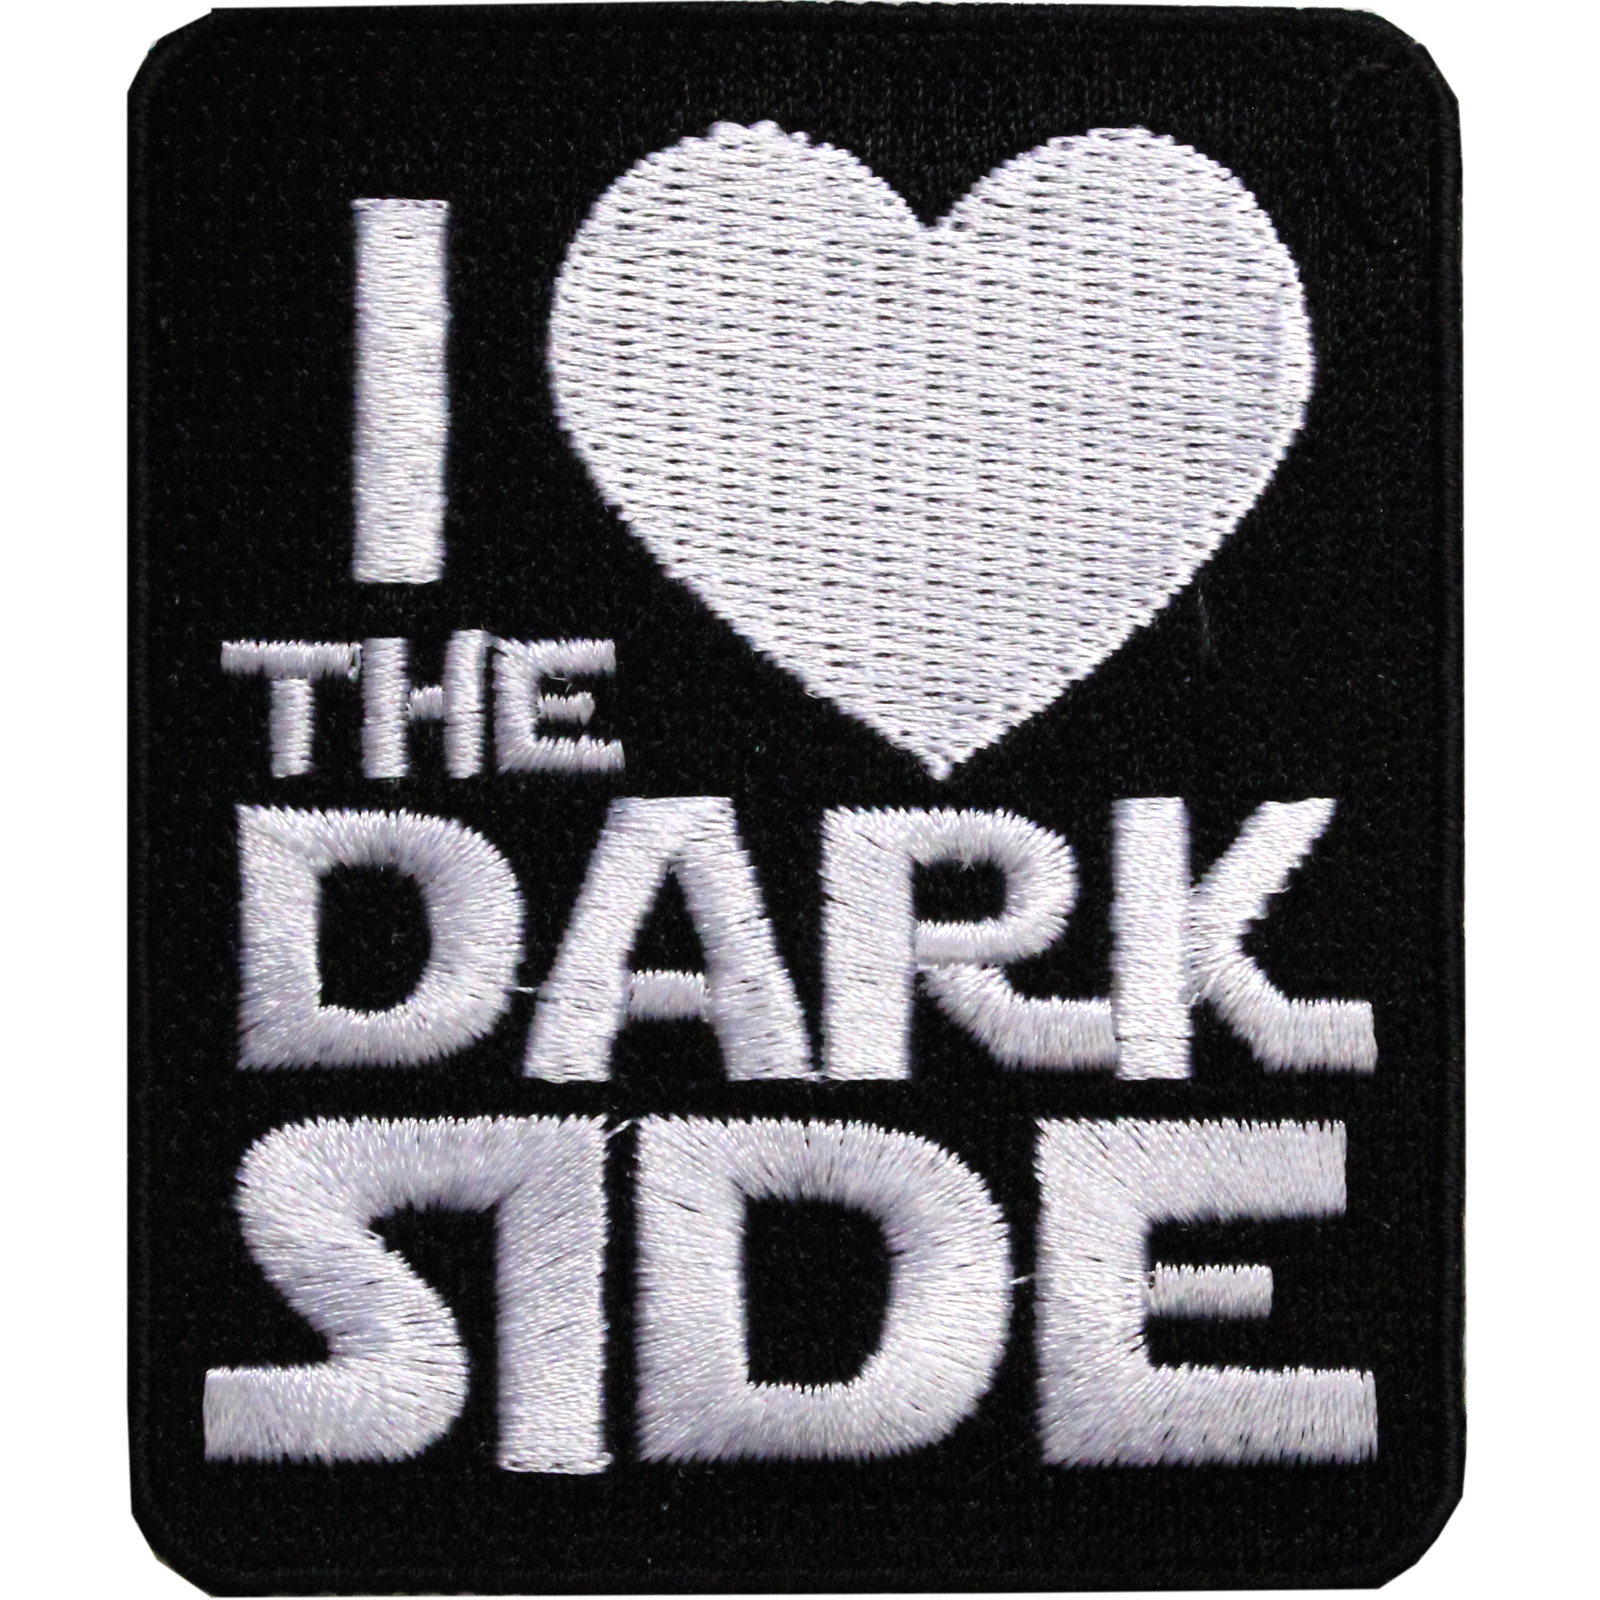 Star Wars Official 'I Love The Dark Side' Iron On Patch